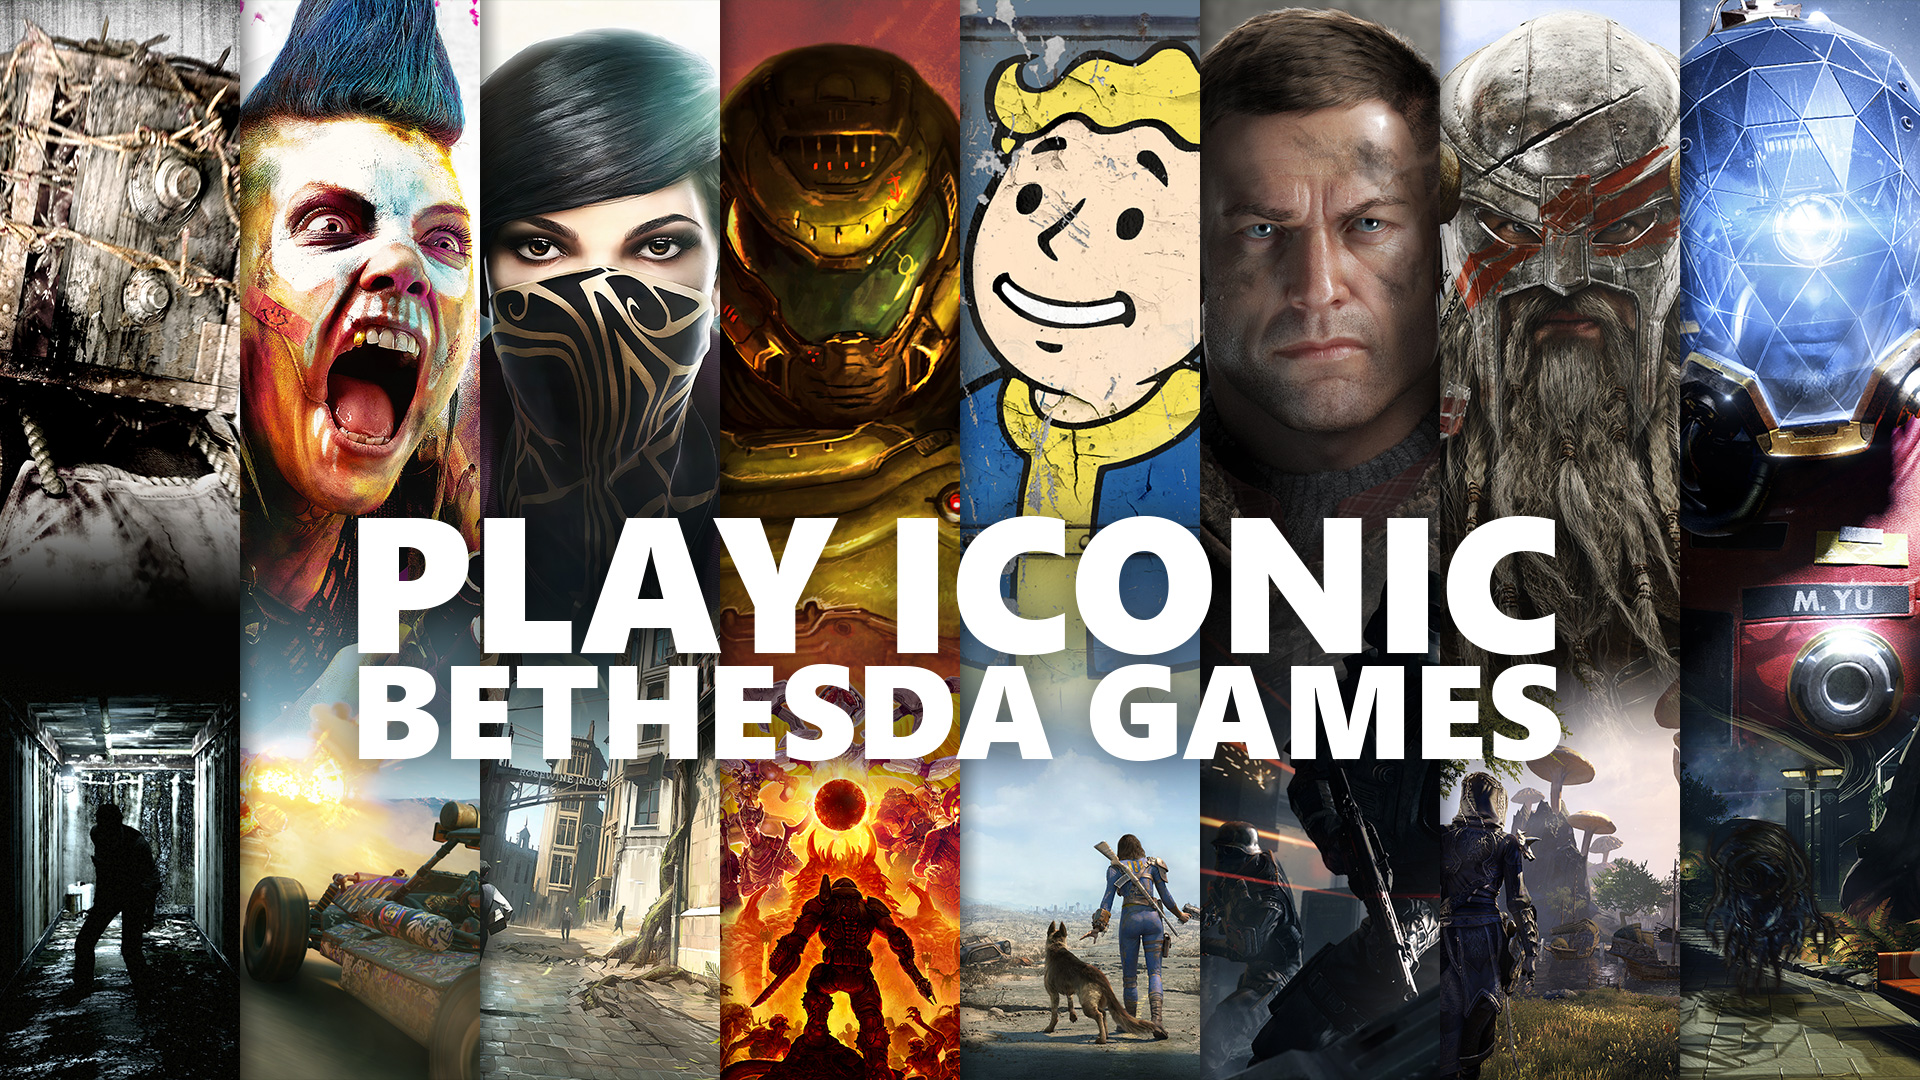 Video For 20 Bethesda Games from the World's Most Iconic Franchises Available in Xbox Game Pass Tomorrow